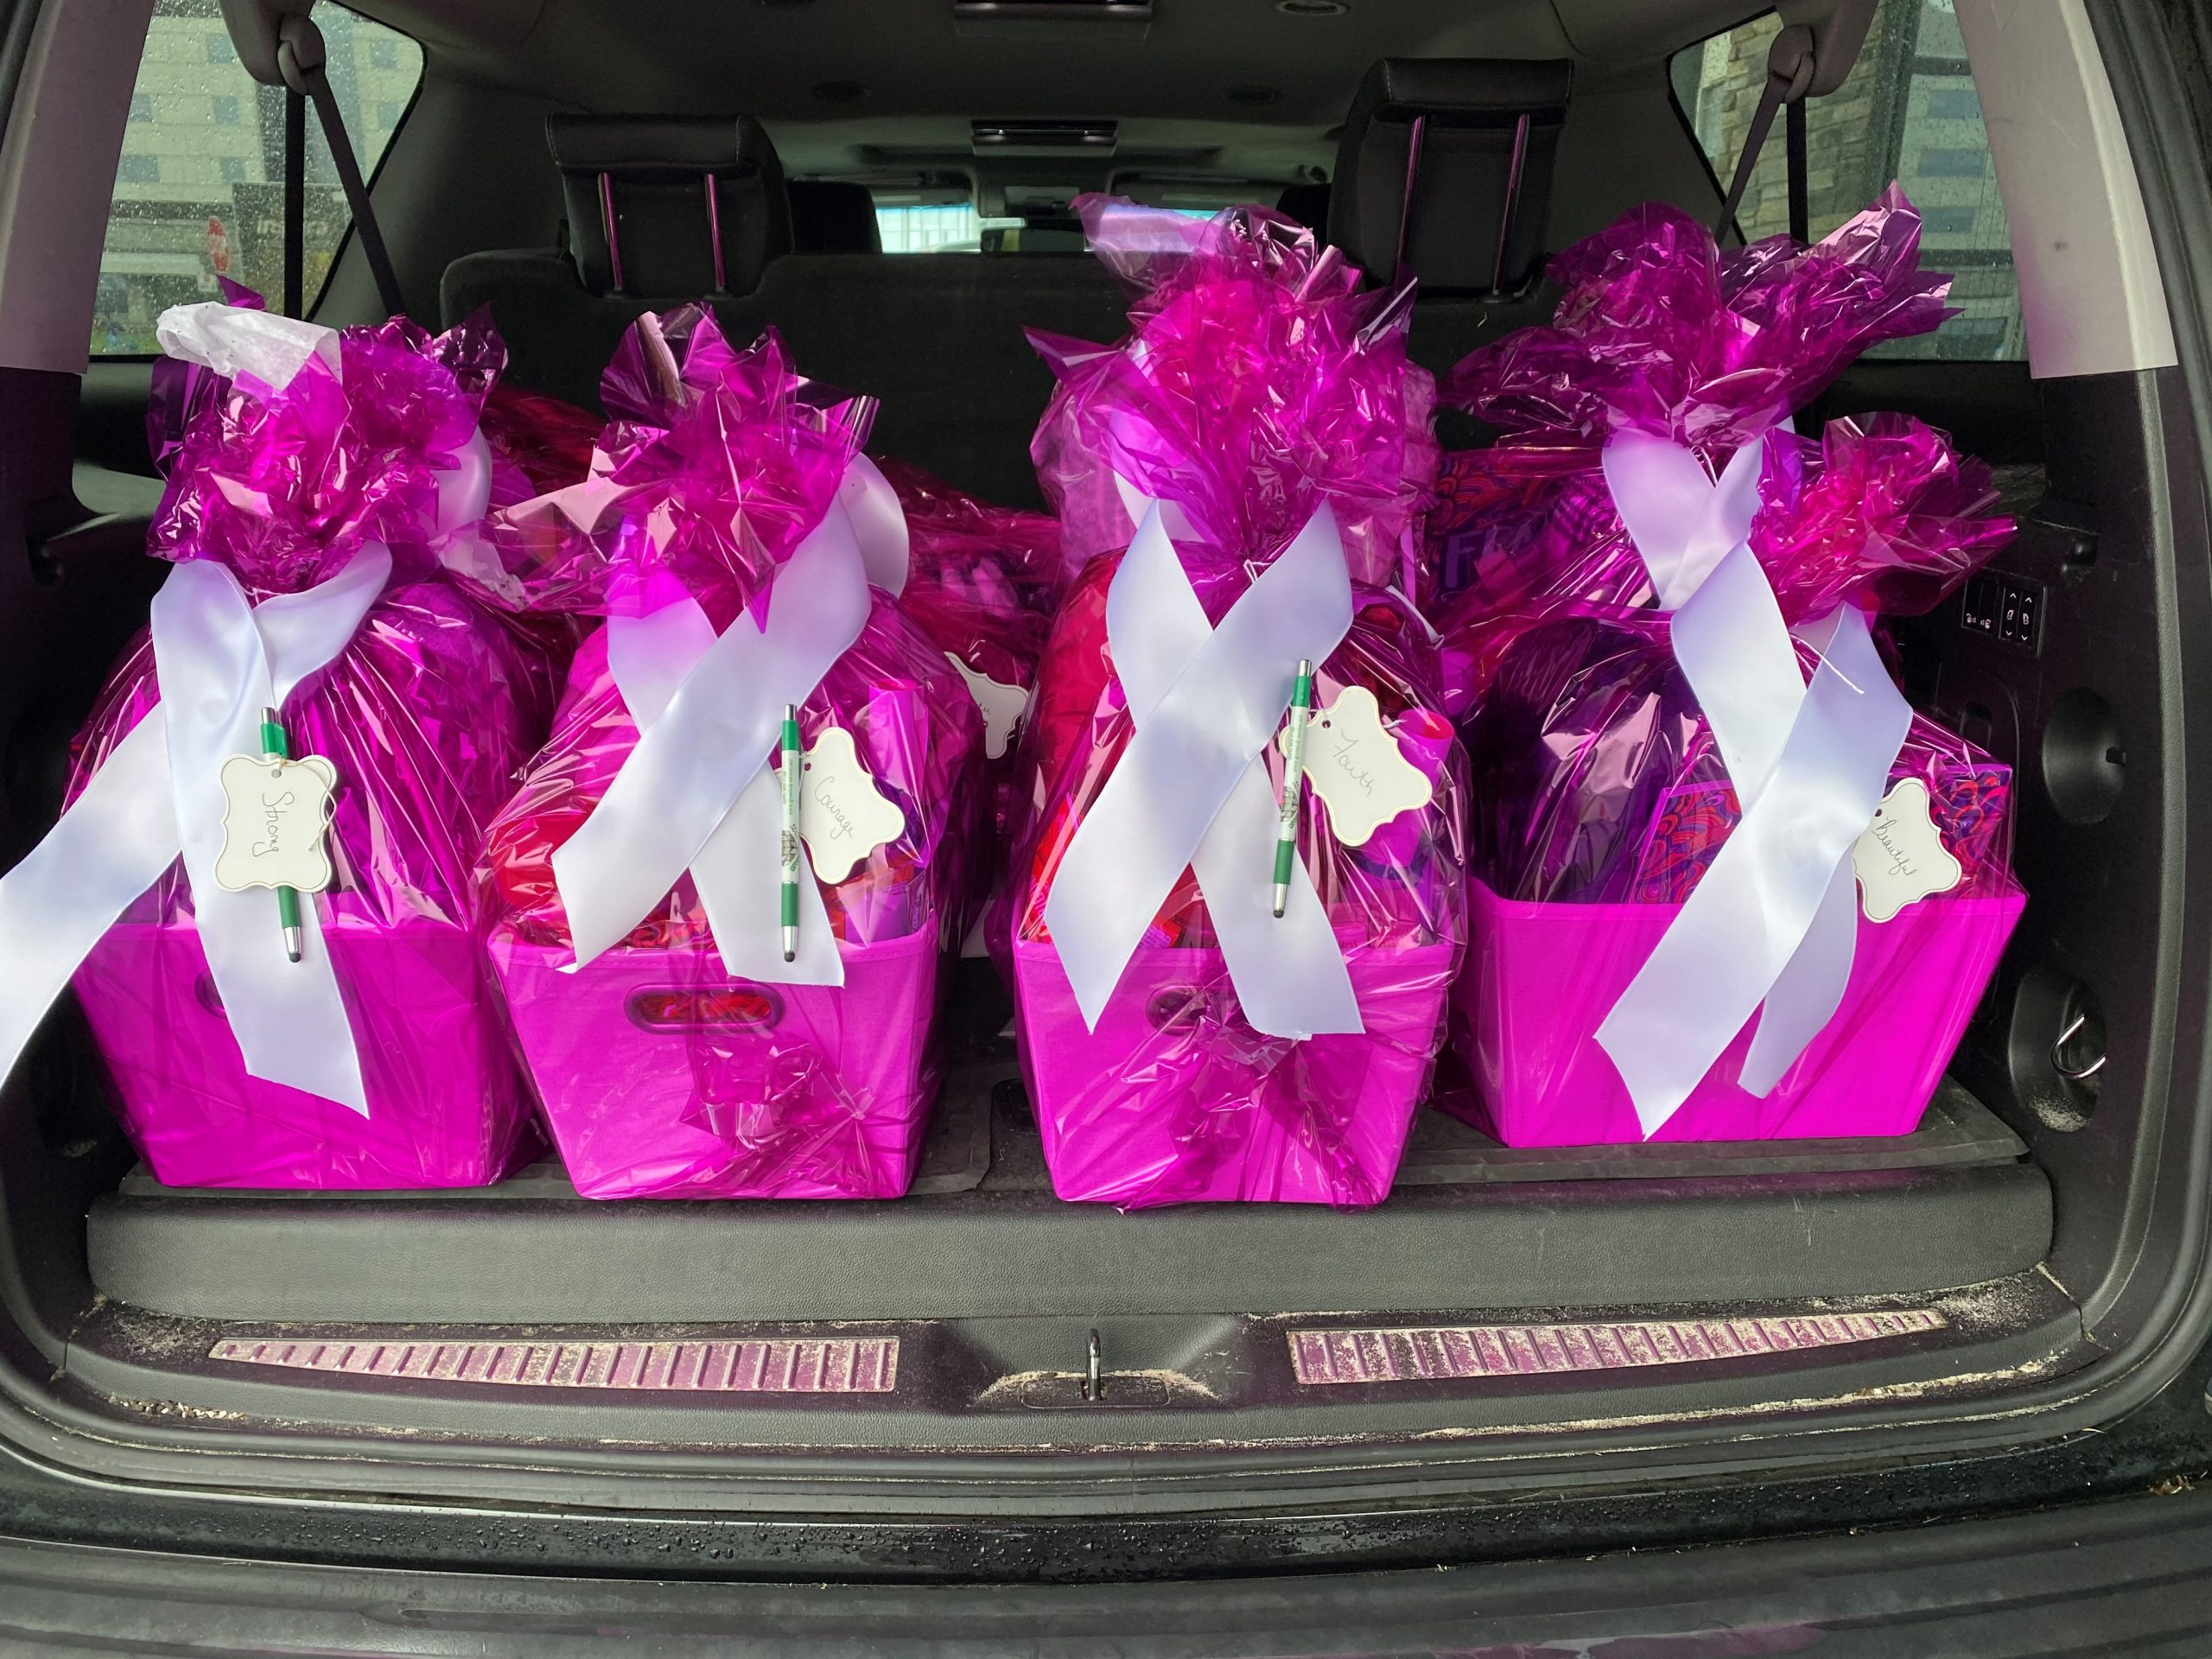 All the wrapped packages in back of car ready to be delivered